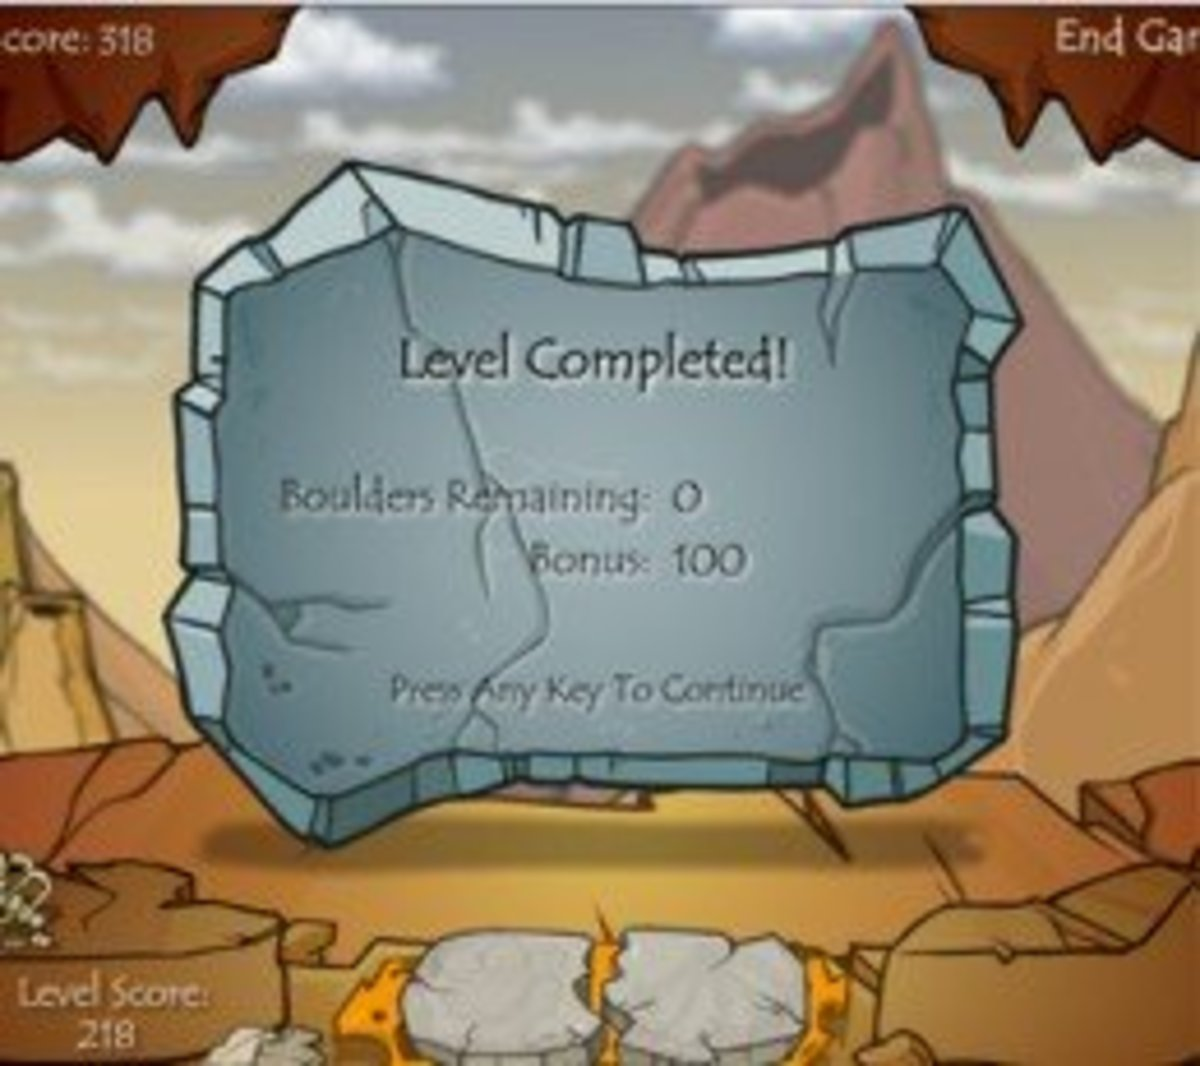 If you have less than ten boulders left at the end of the level, you get a bonus!